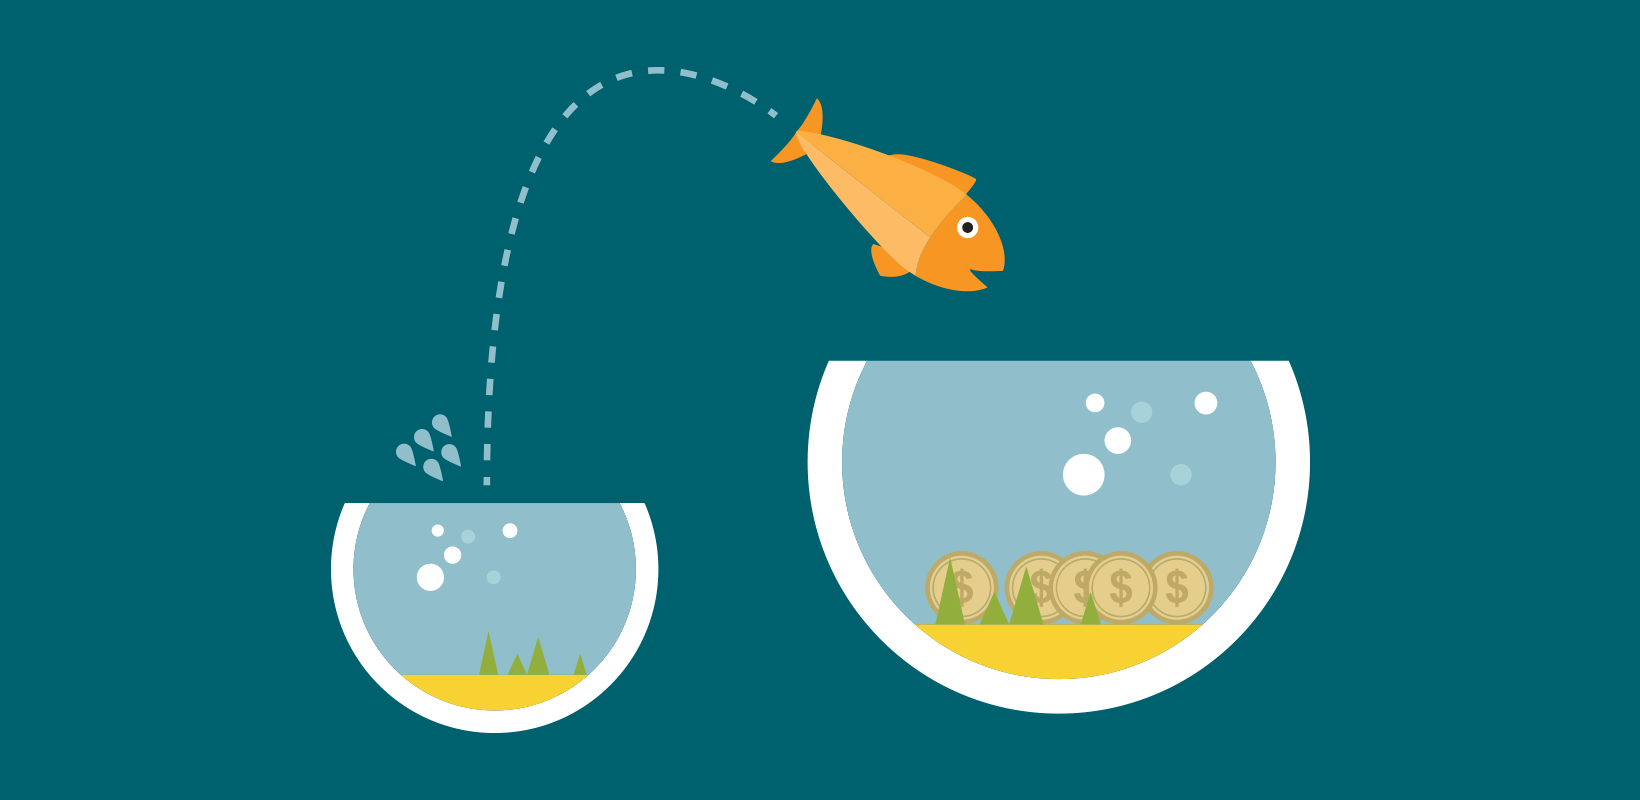 How to optimize a nonprofit website - image of a fish jumping frmo a small bowl into a bigger, better bowl